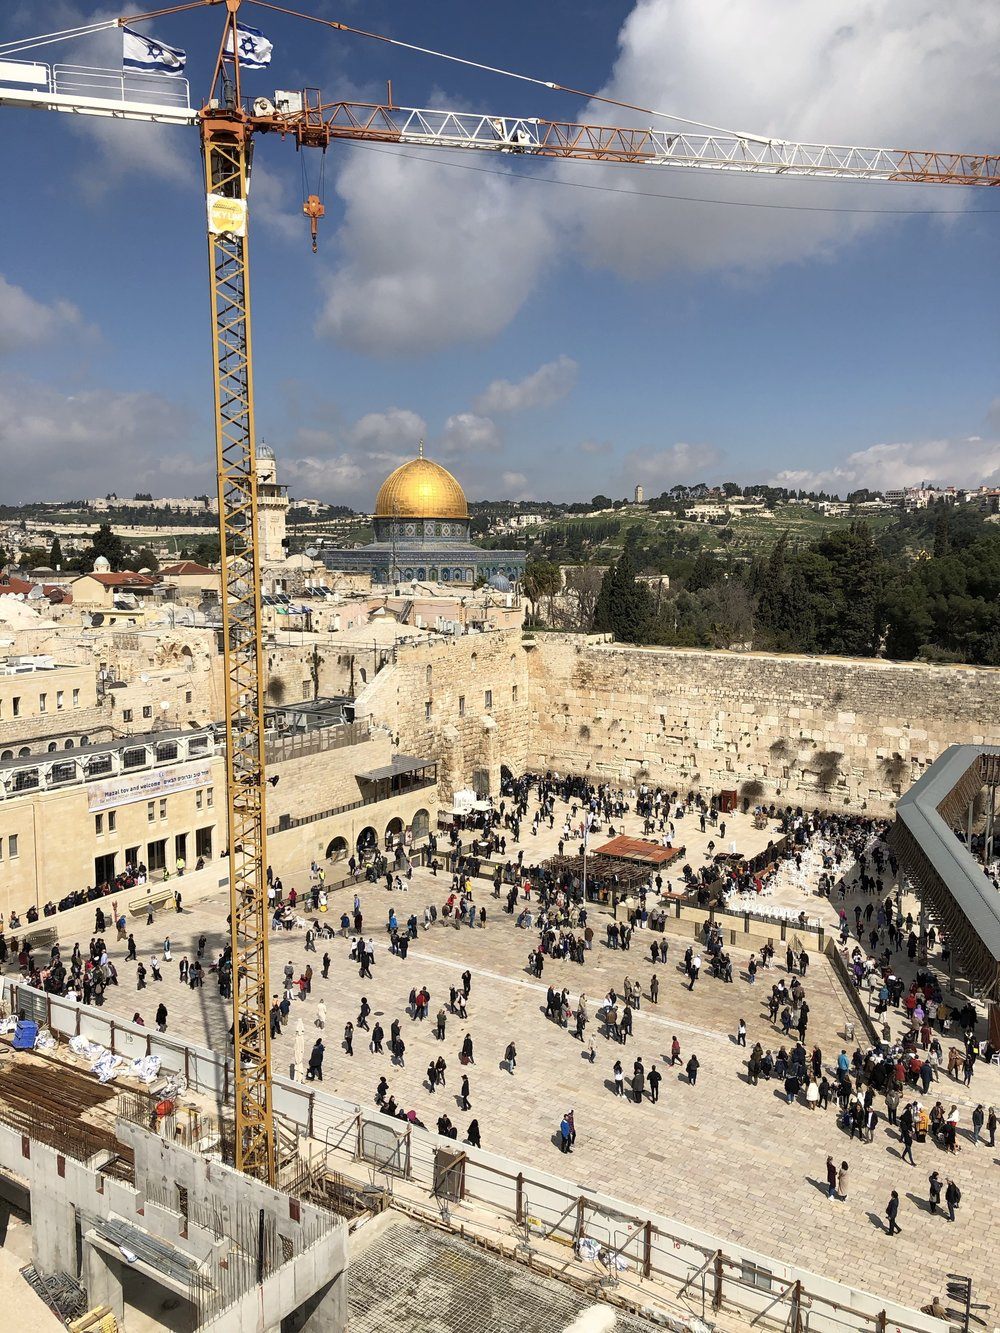 Western Wall and Plaza